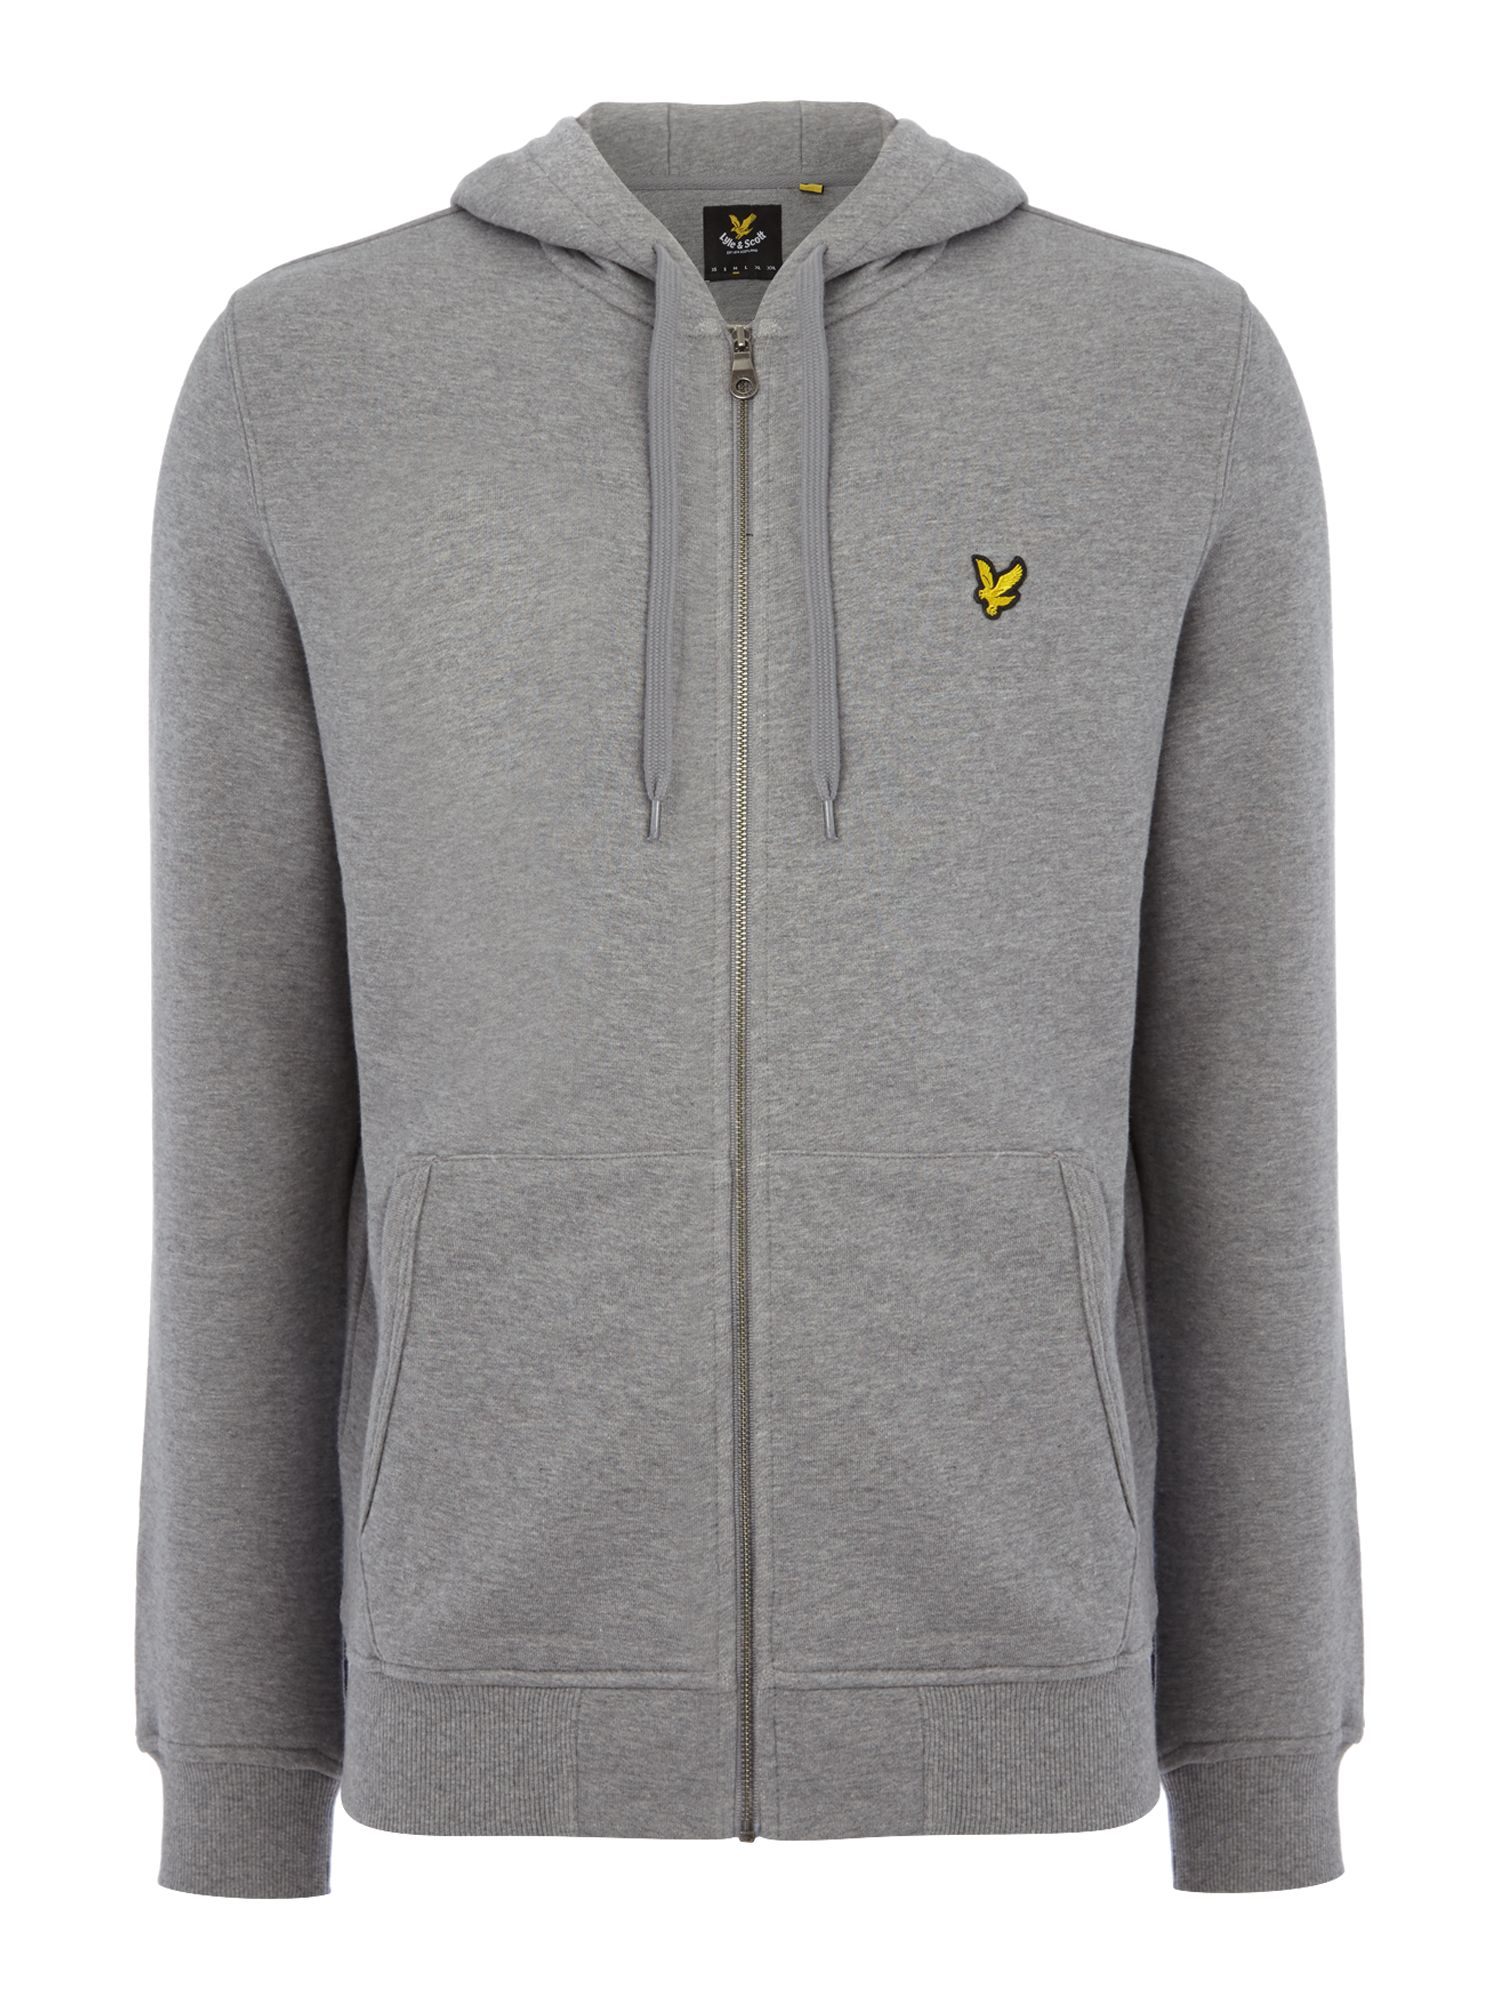 Men's Lyle and Scott Zip Through Hooded Sweatshirt, Mid Grey Marl